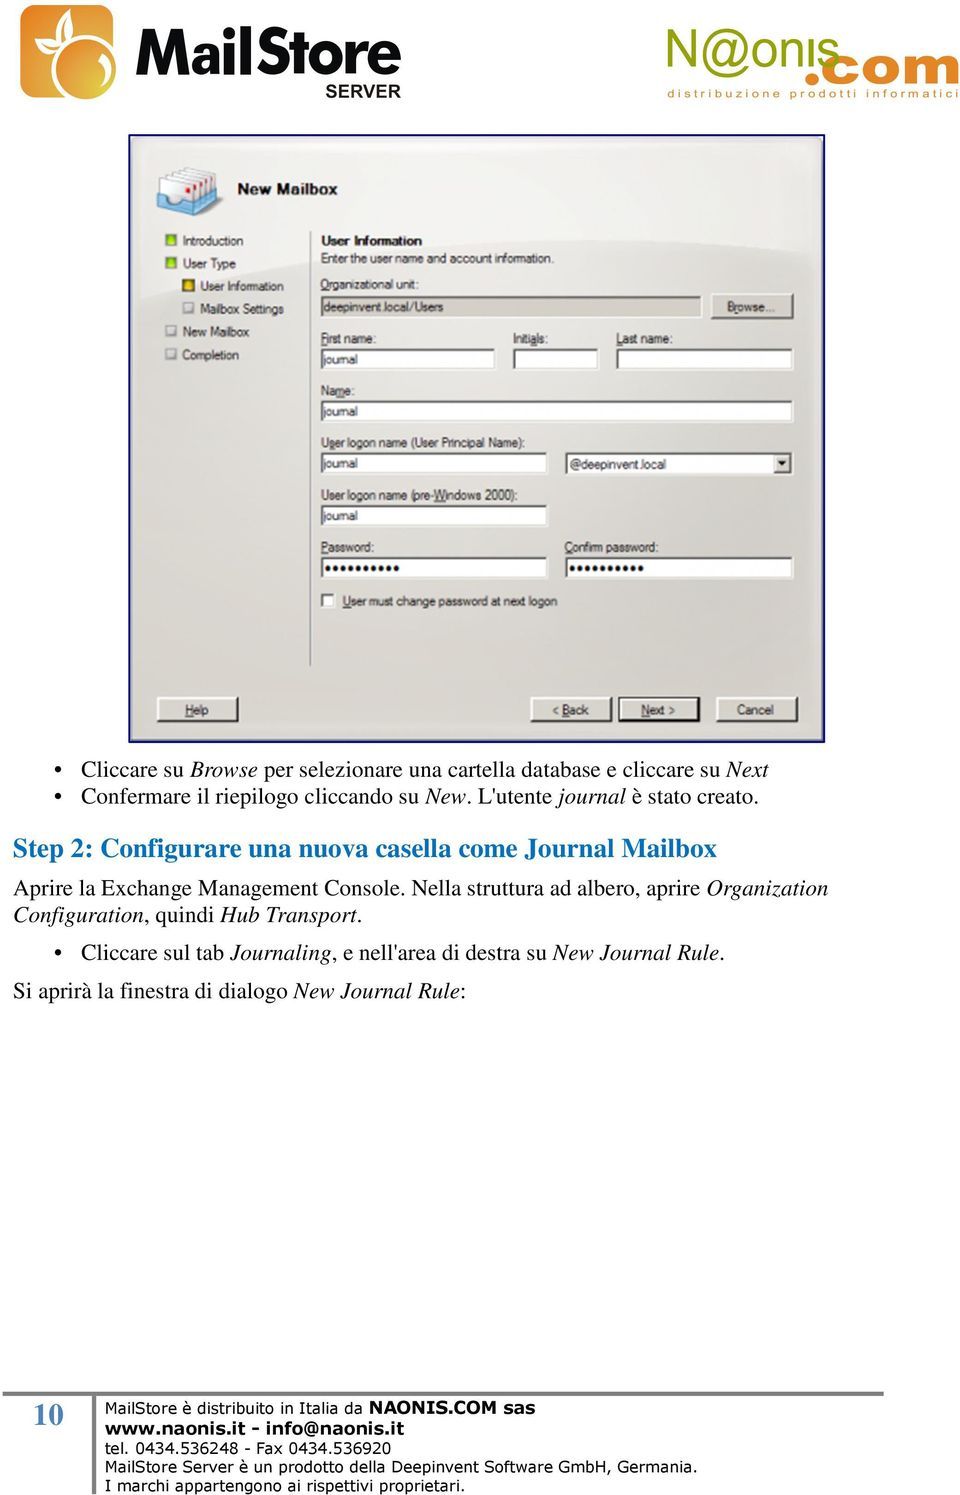 Step 2: Configurare una nuova casella come Journal Mailbox Aprire la Exchange Management Console.